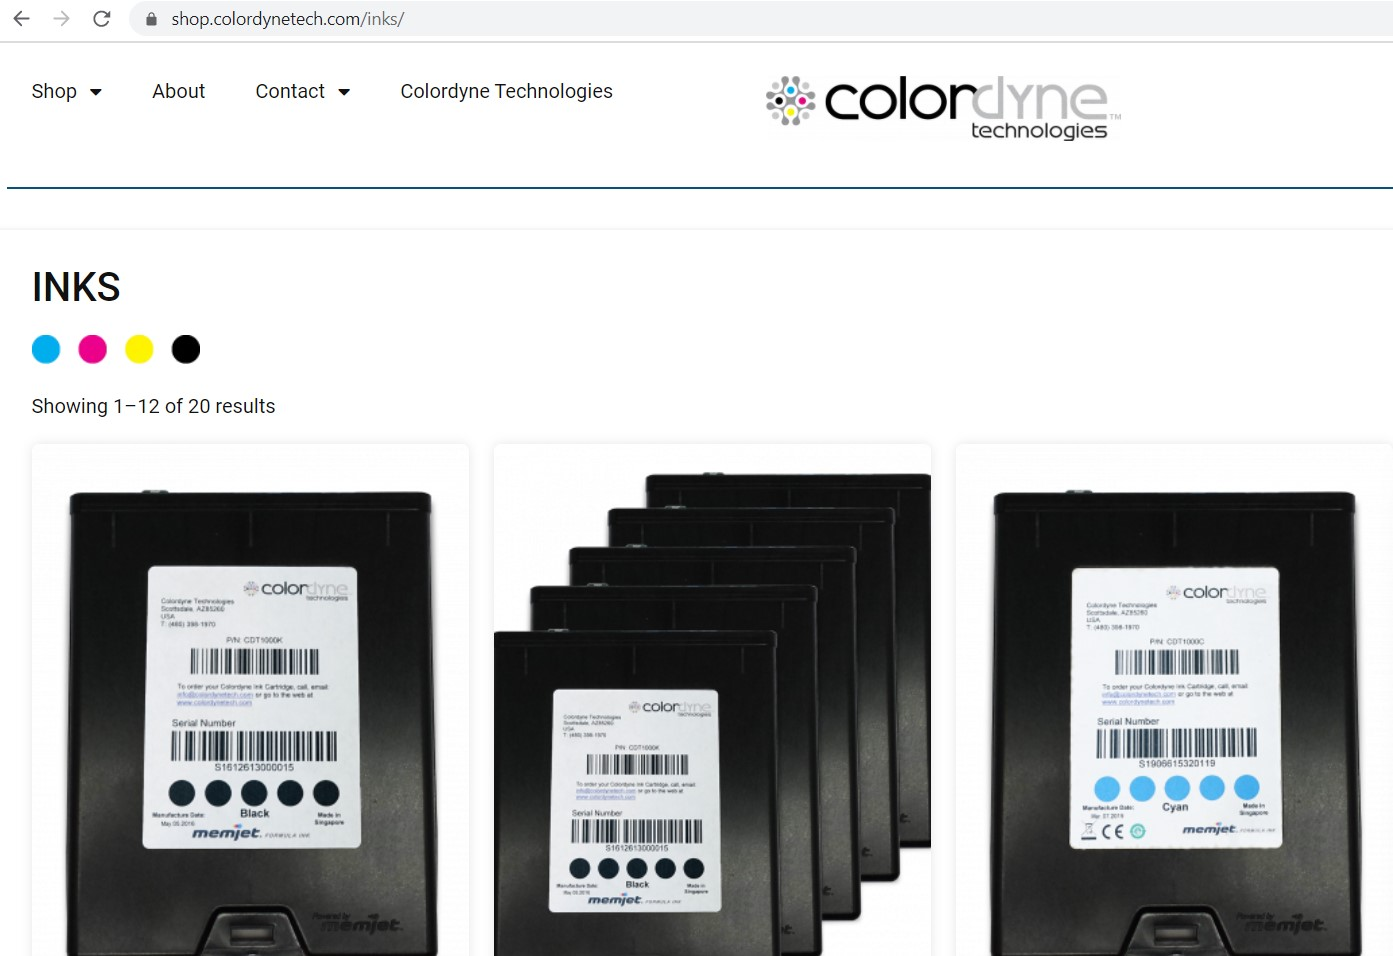 Colordyne Unveils New eCommerce Website